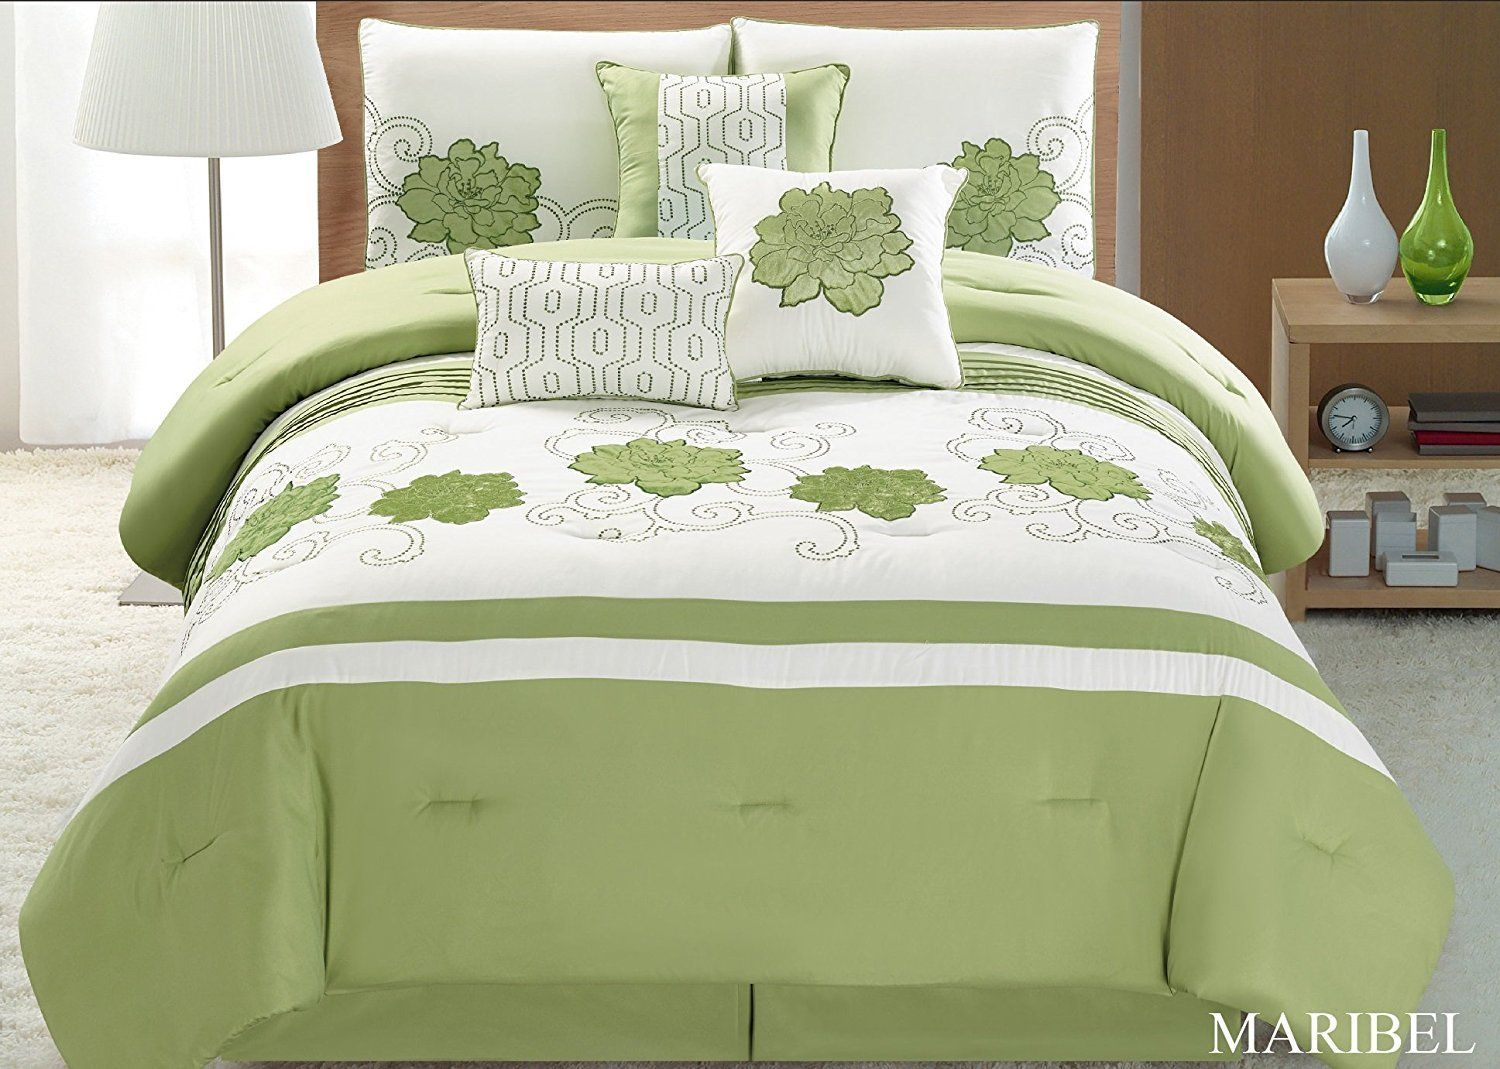 kitchen set com amazon brown king pinterest sage textile river home duck comforter dream green pin tuscany